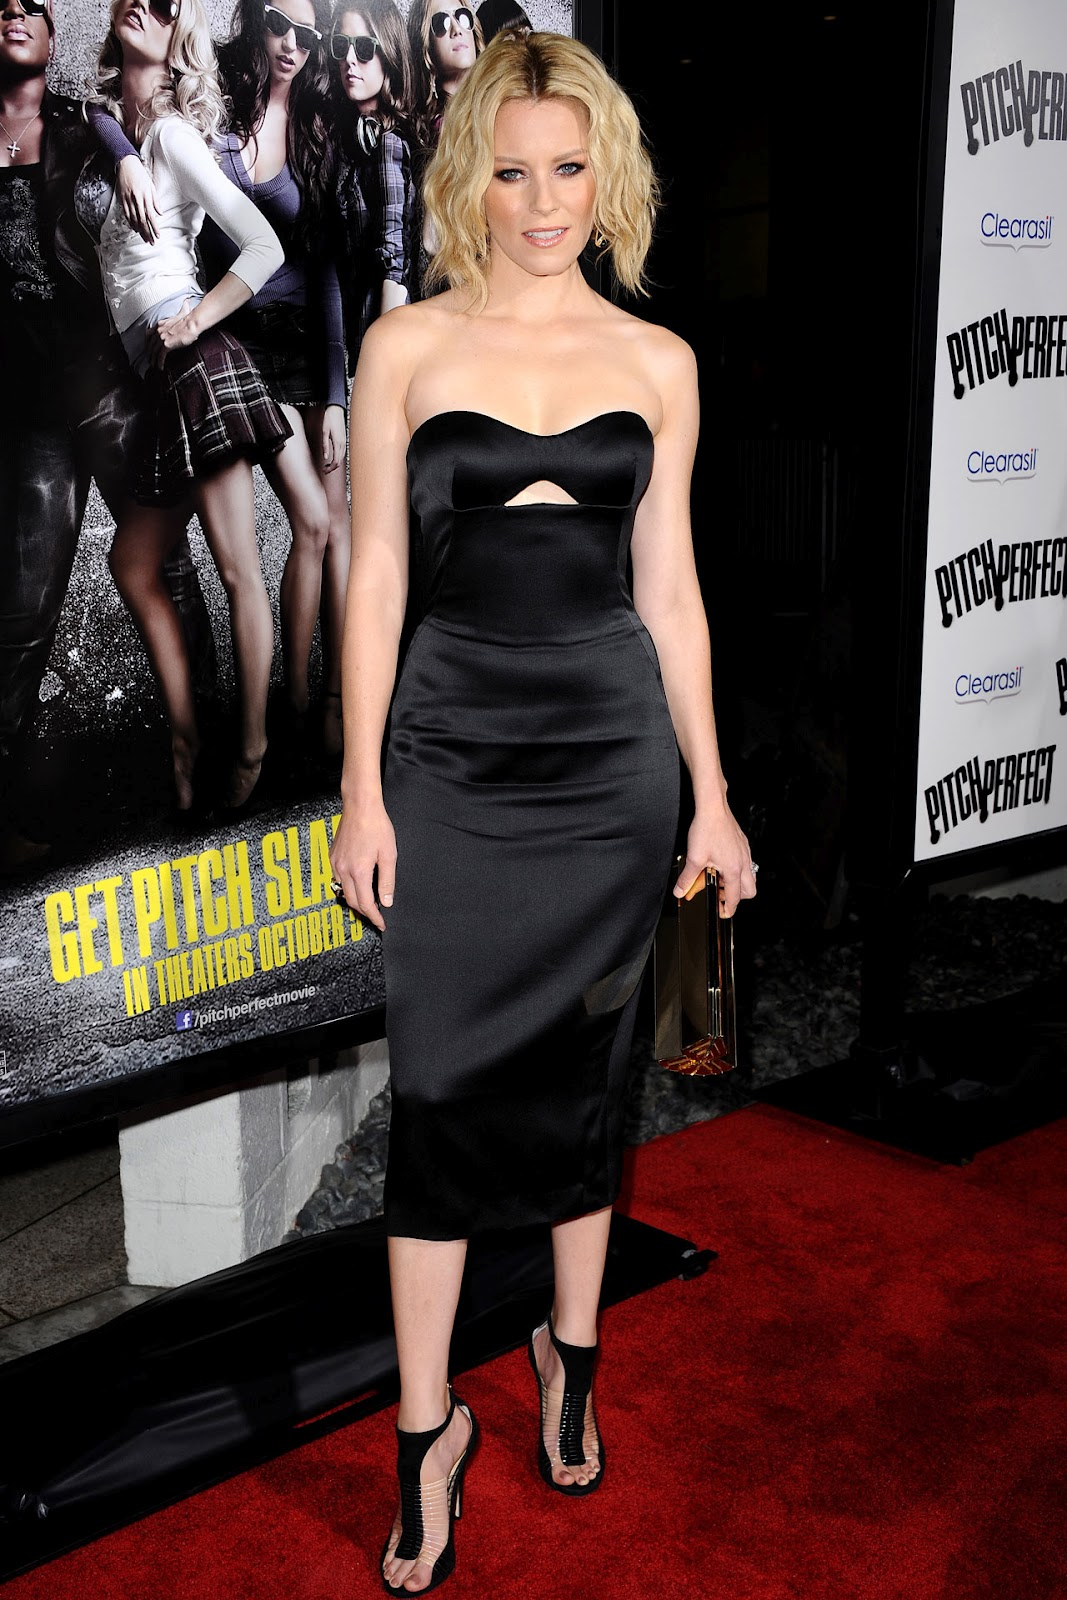 Elizabeth Banks Wearing Black Satin Strapless Dress